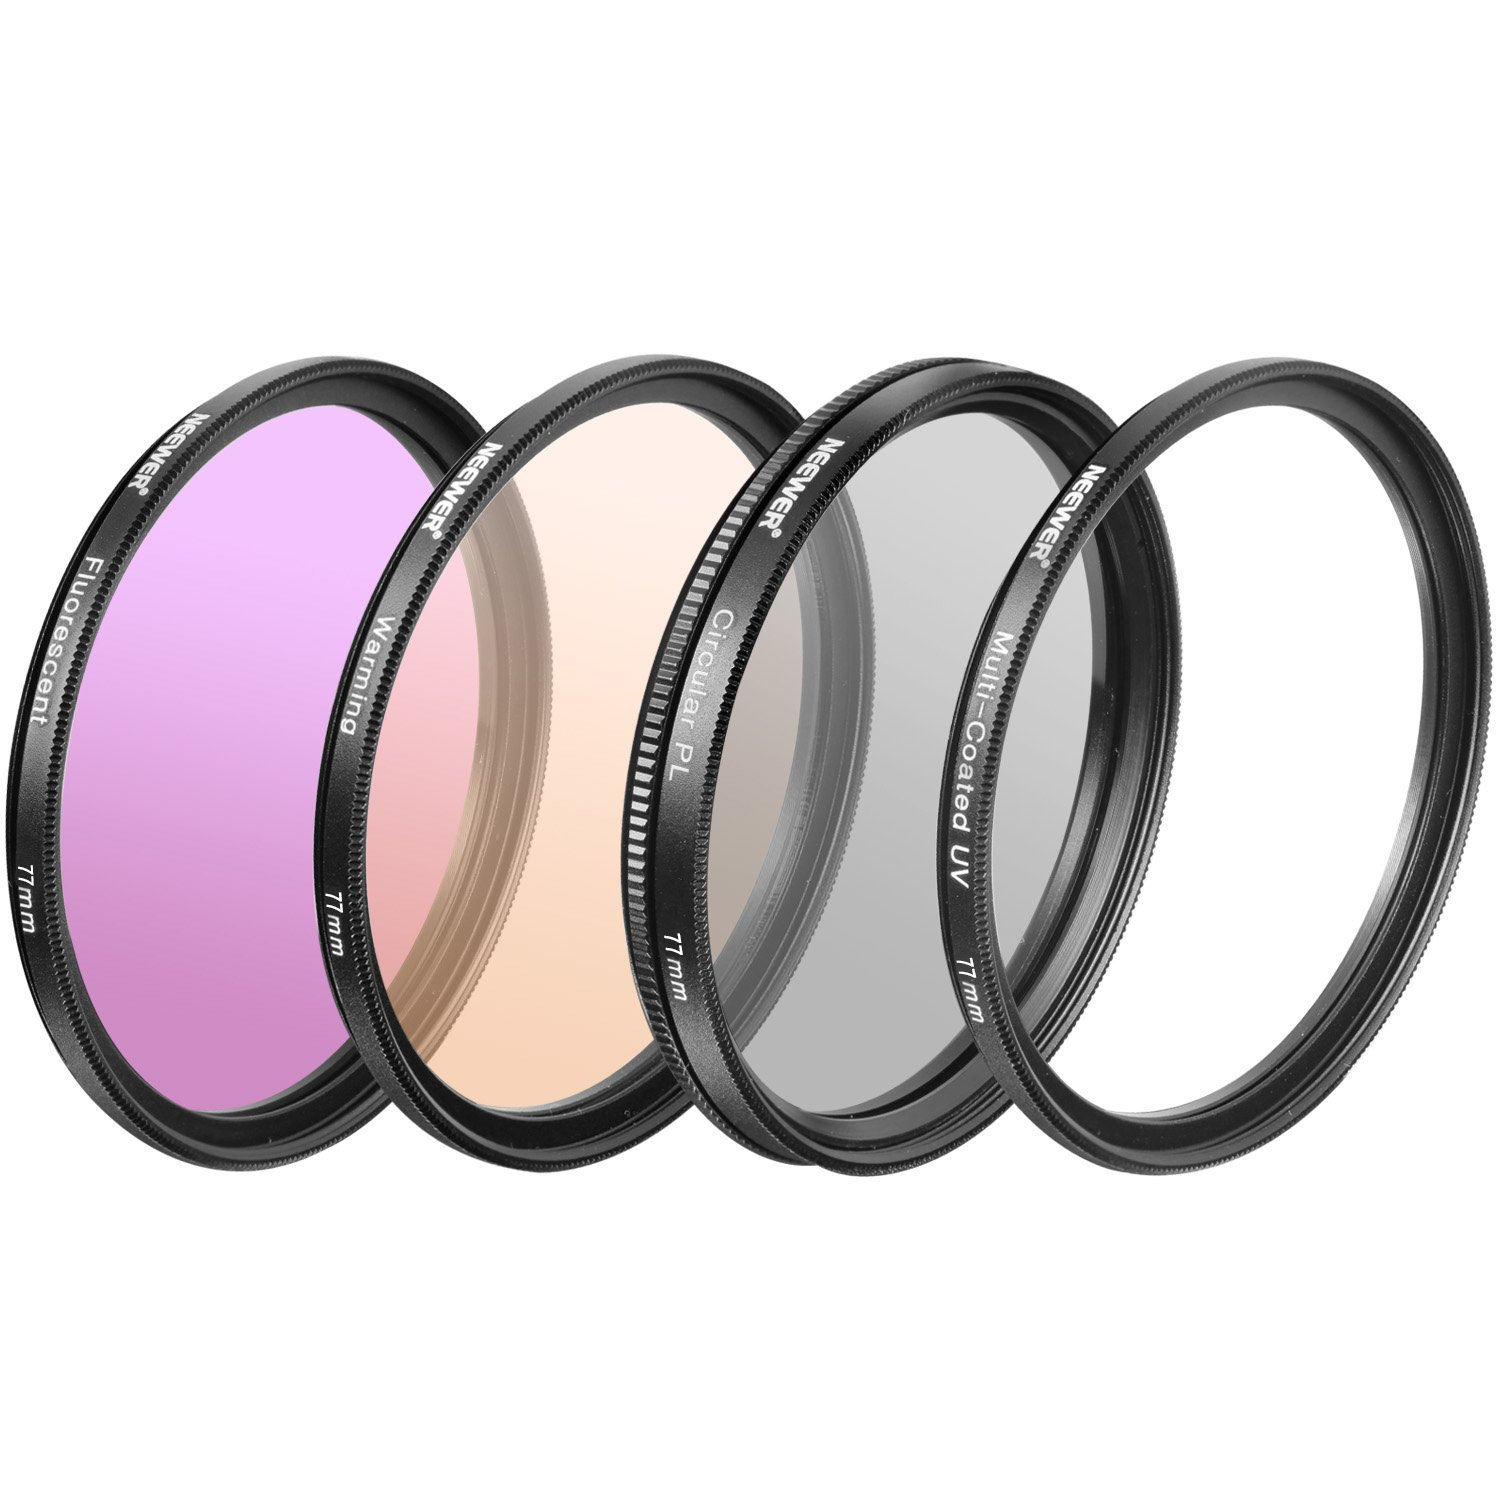 Neewer 4 Pieces 77MM Professional Photography Lens Filter Kit for Canon DSLR Camera, Includes: UV, CPL, FLD,Warming Filter, Made of HD Optical Glass and Aluminum Alloy